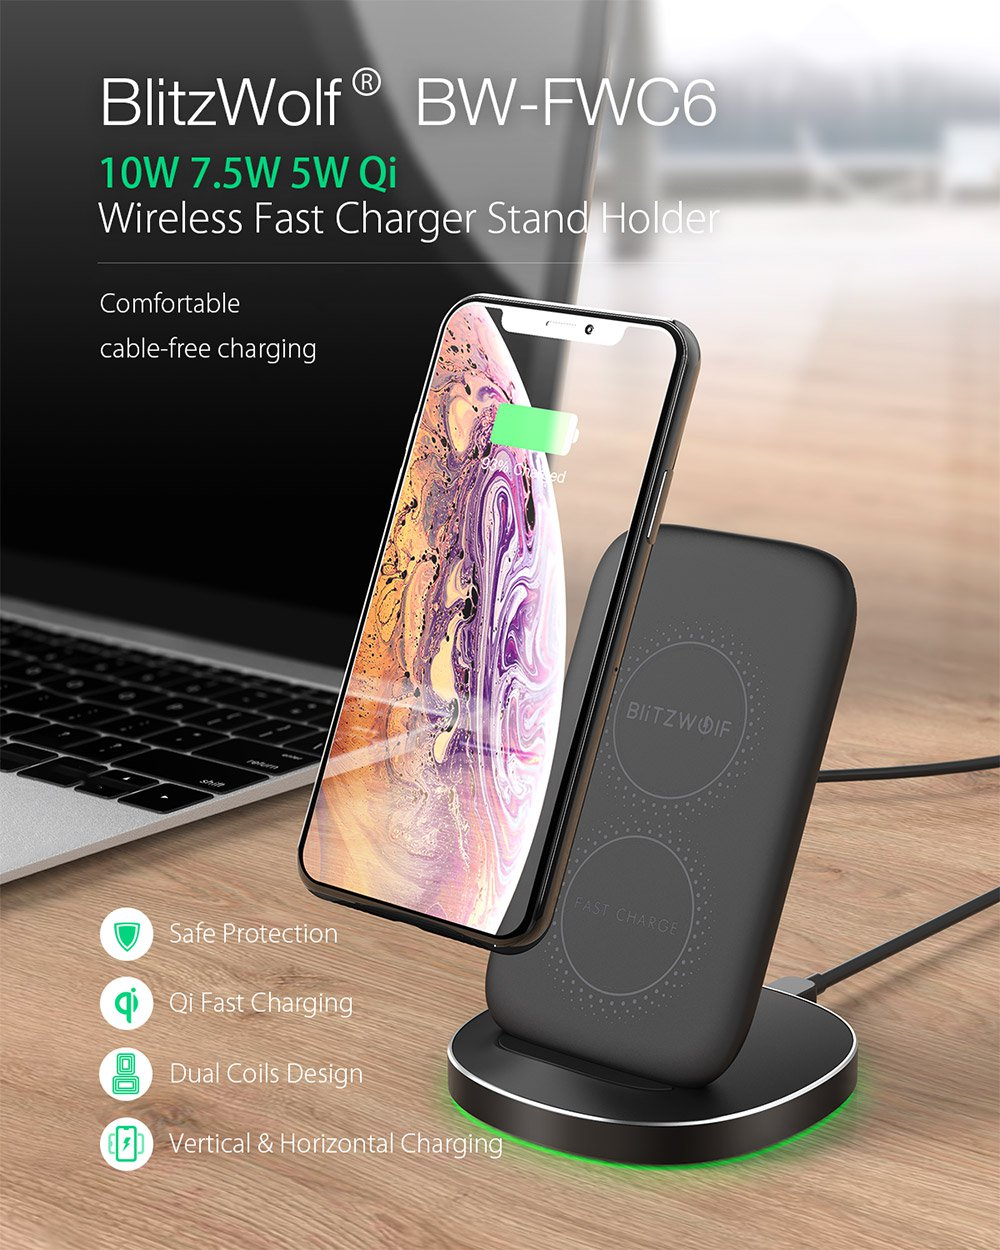 BW FWC6 10W 7.5W 5W Dual Coils Qi Smart Wireless Fast Charger